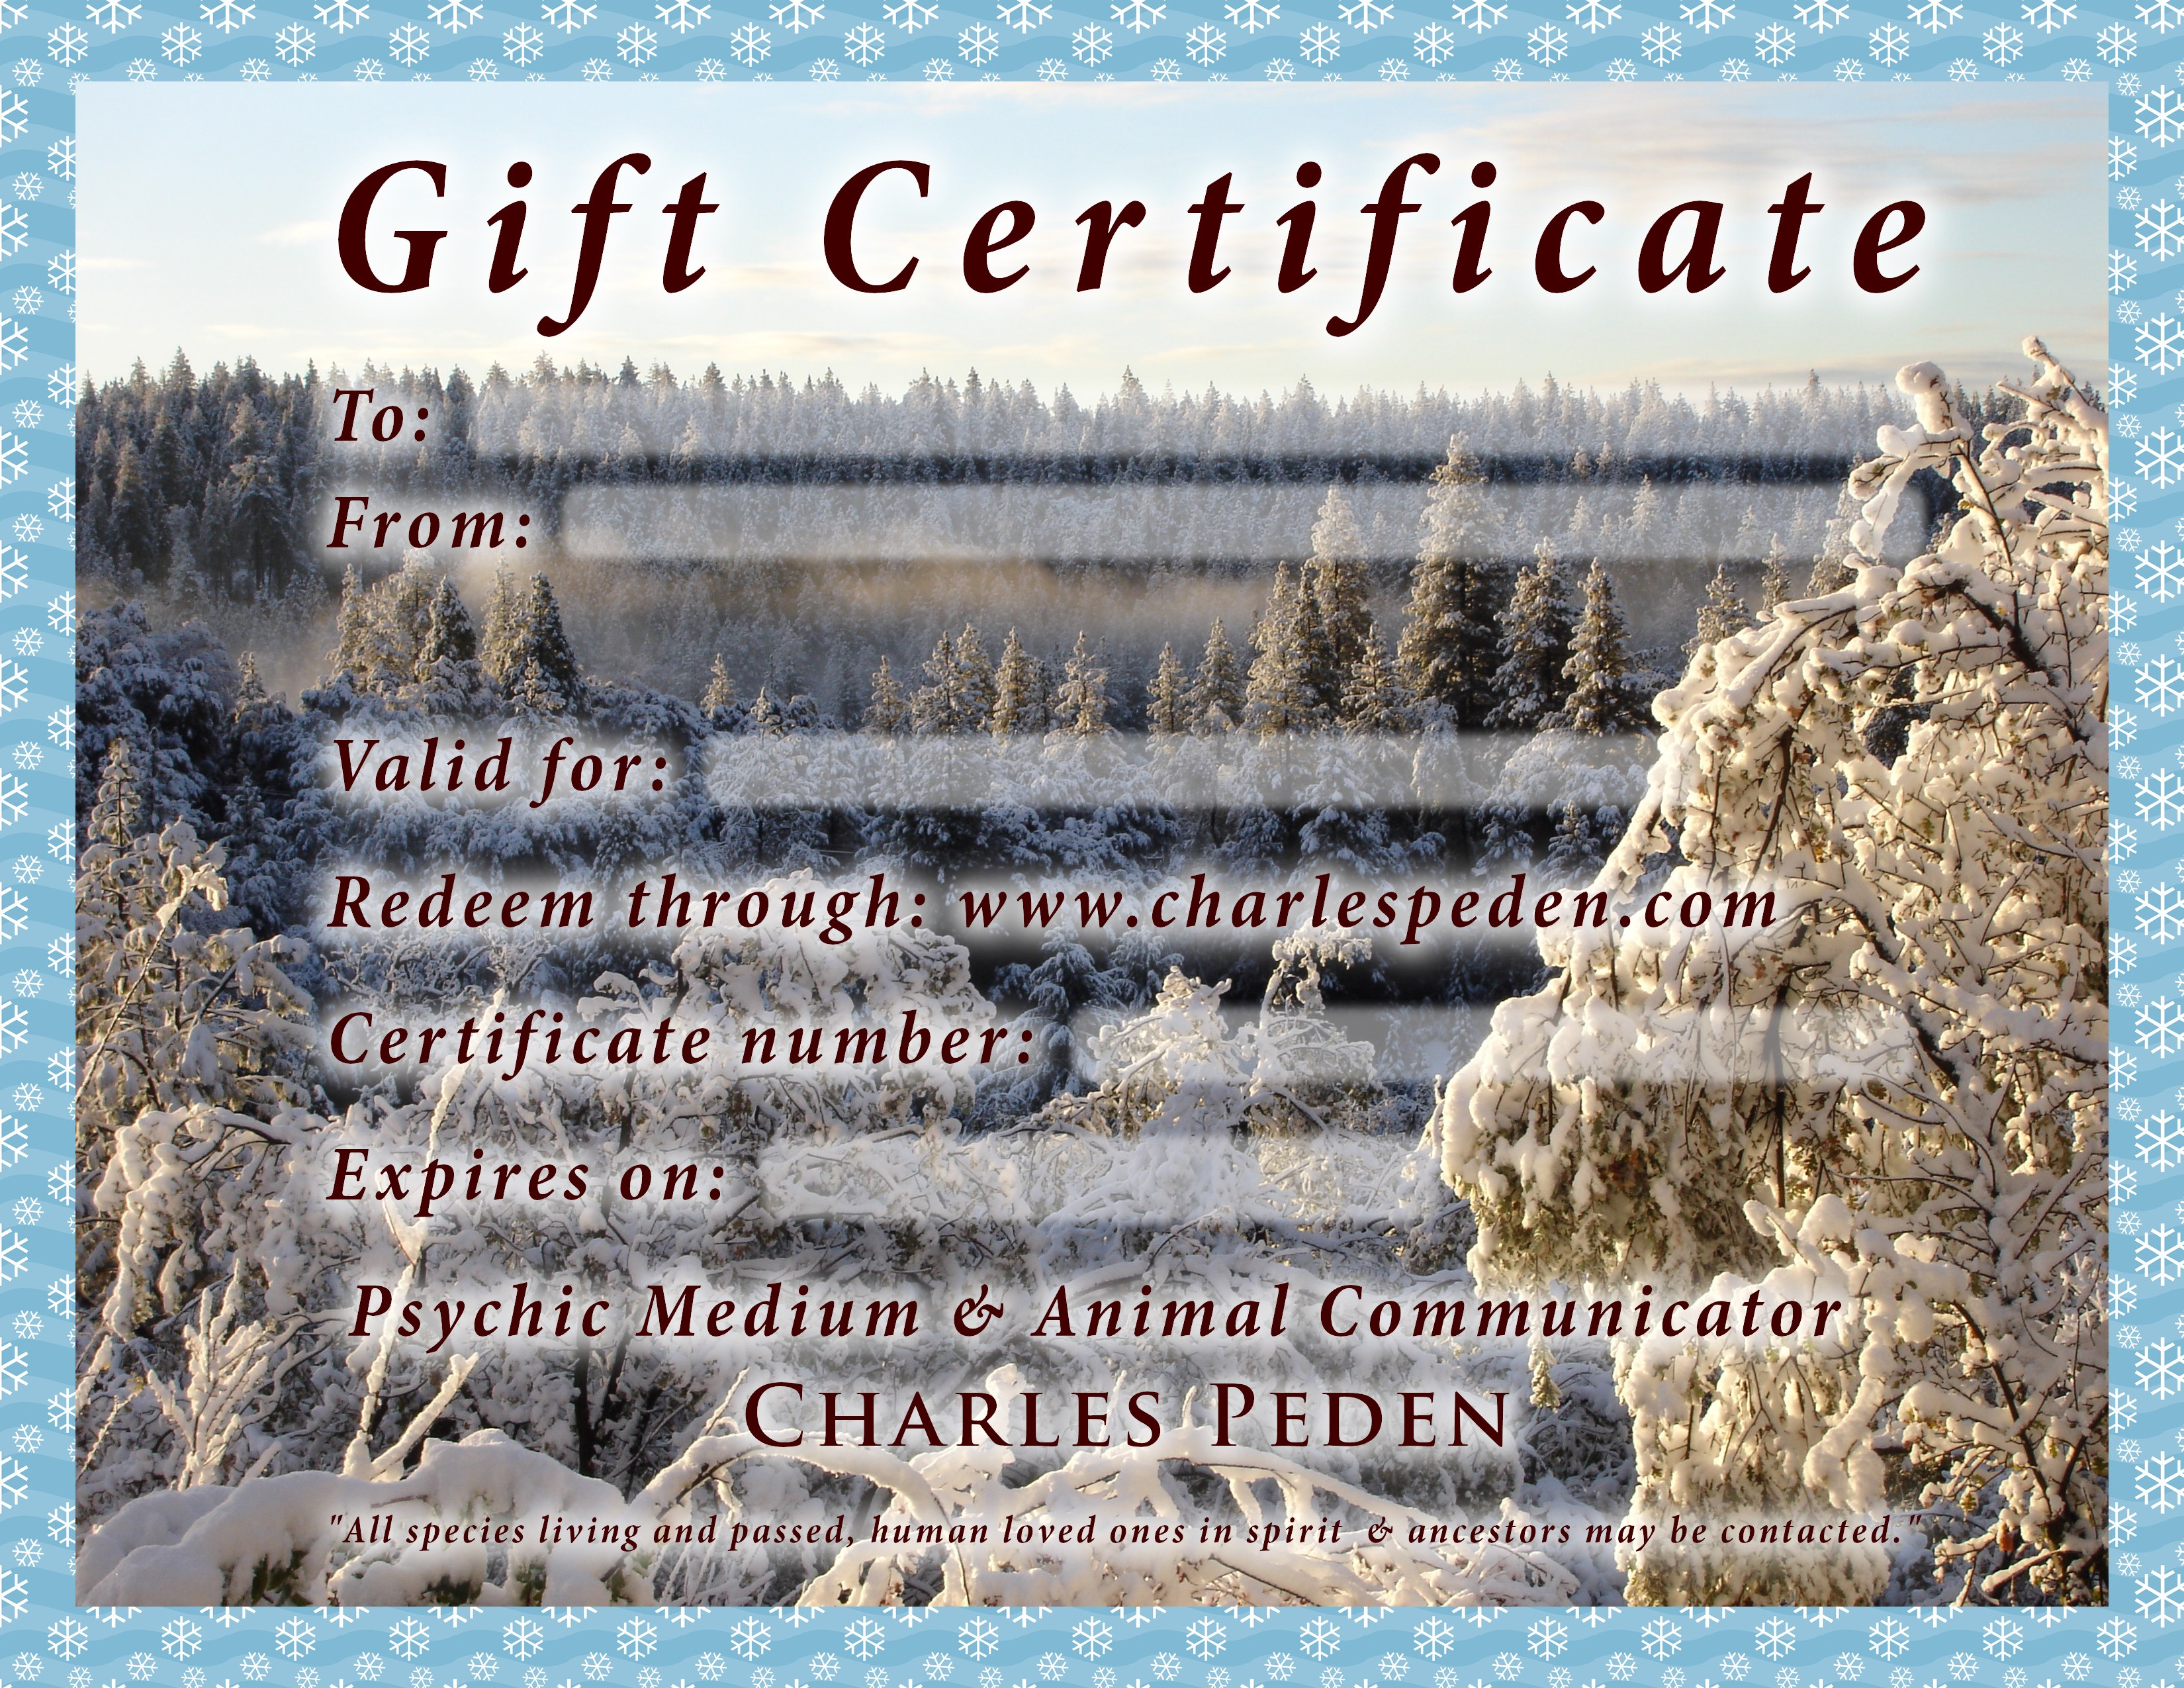 Gift certificate blank with a snowy winter forest scene in the background.